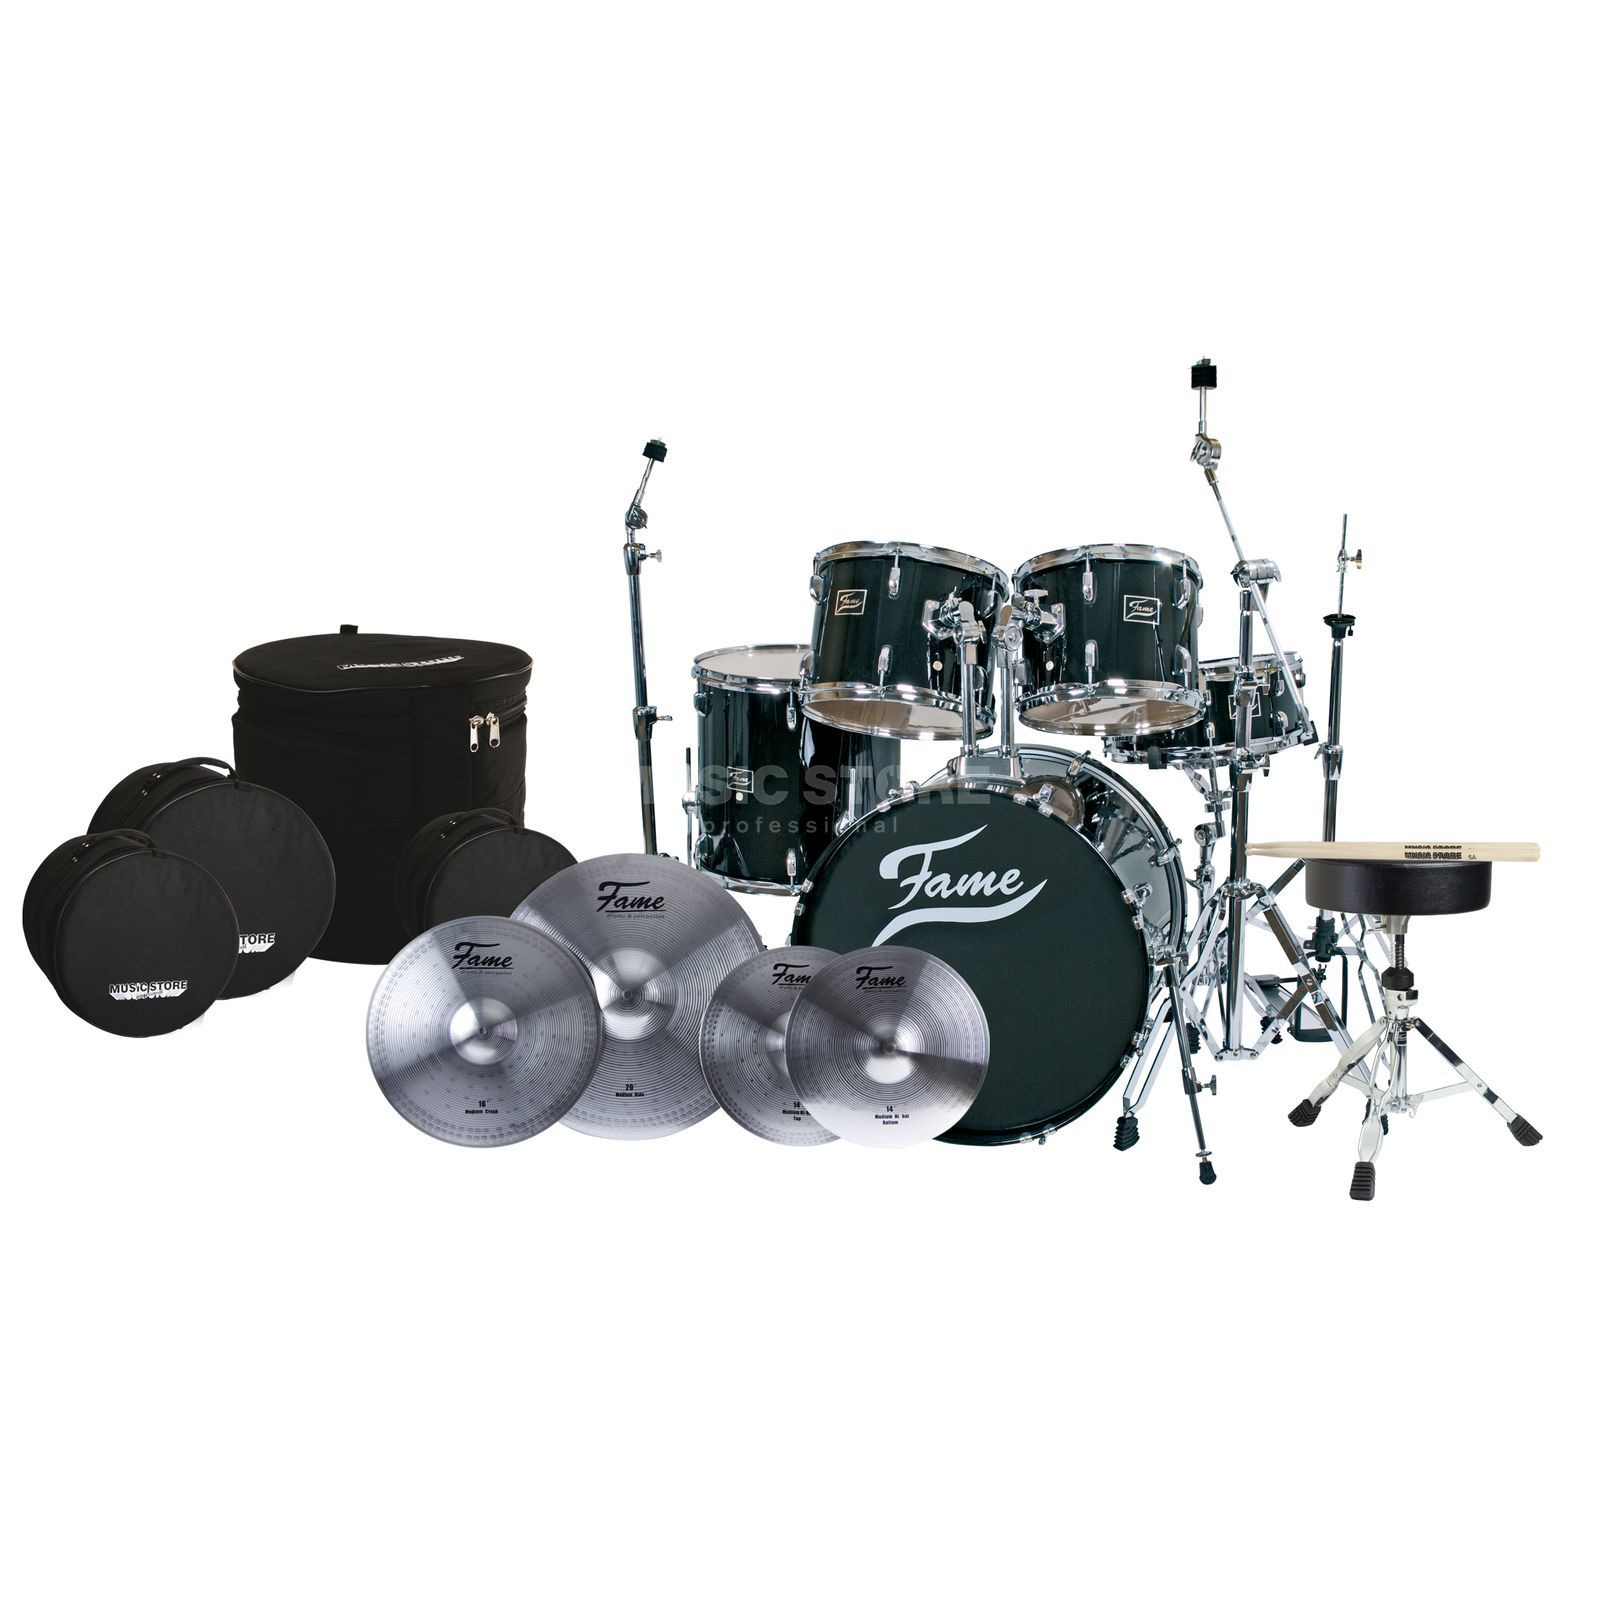 SET FAME Maple Std. Mega-Bundle inkl. Becken,HW, Bags & Sticks Produktbild